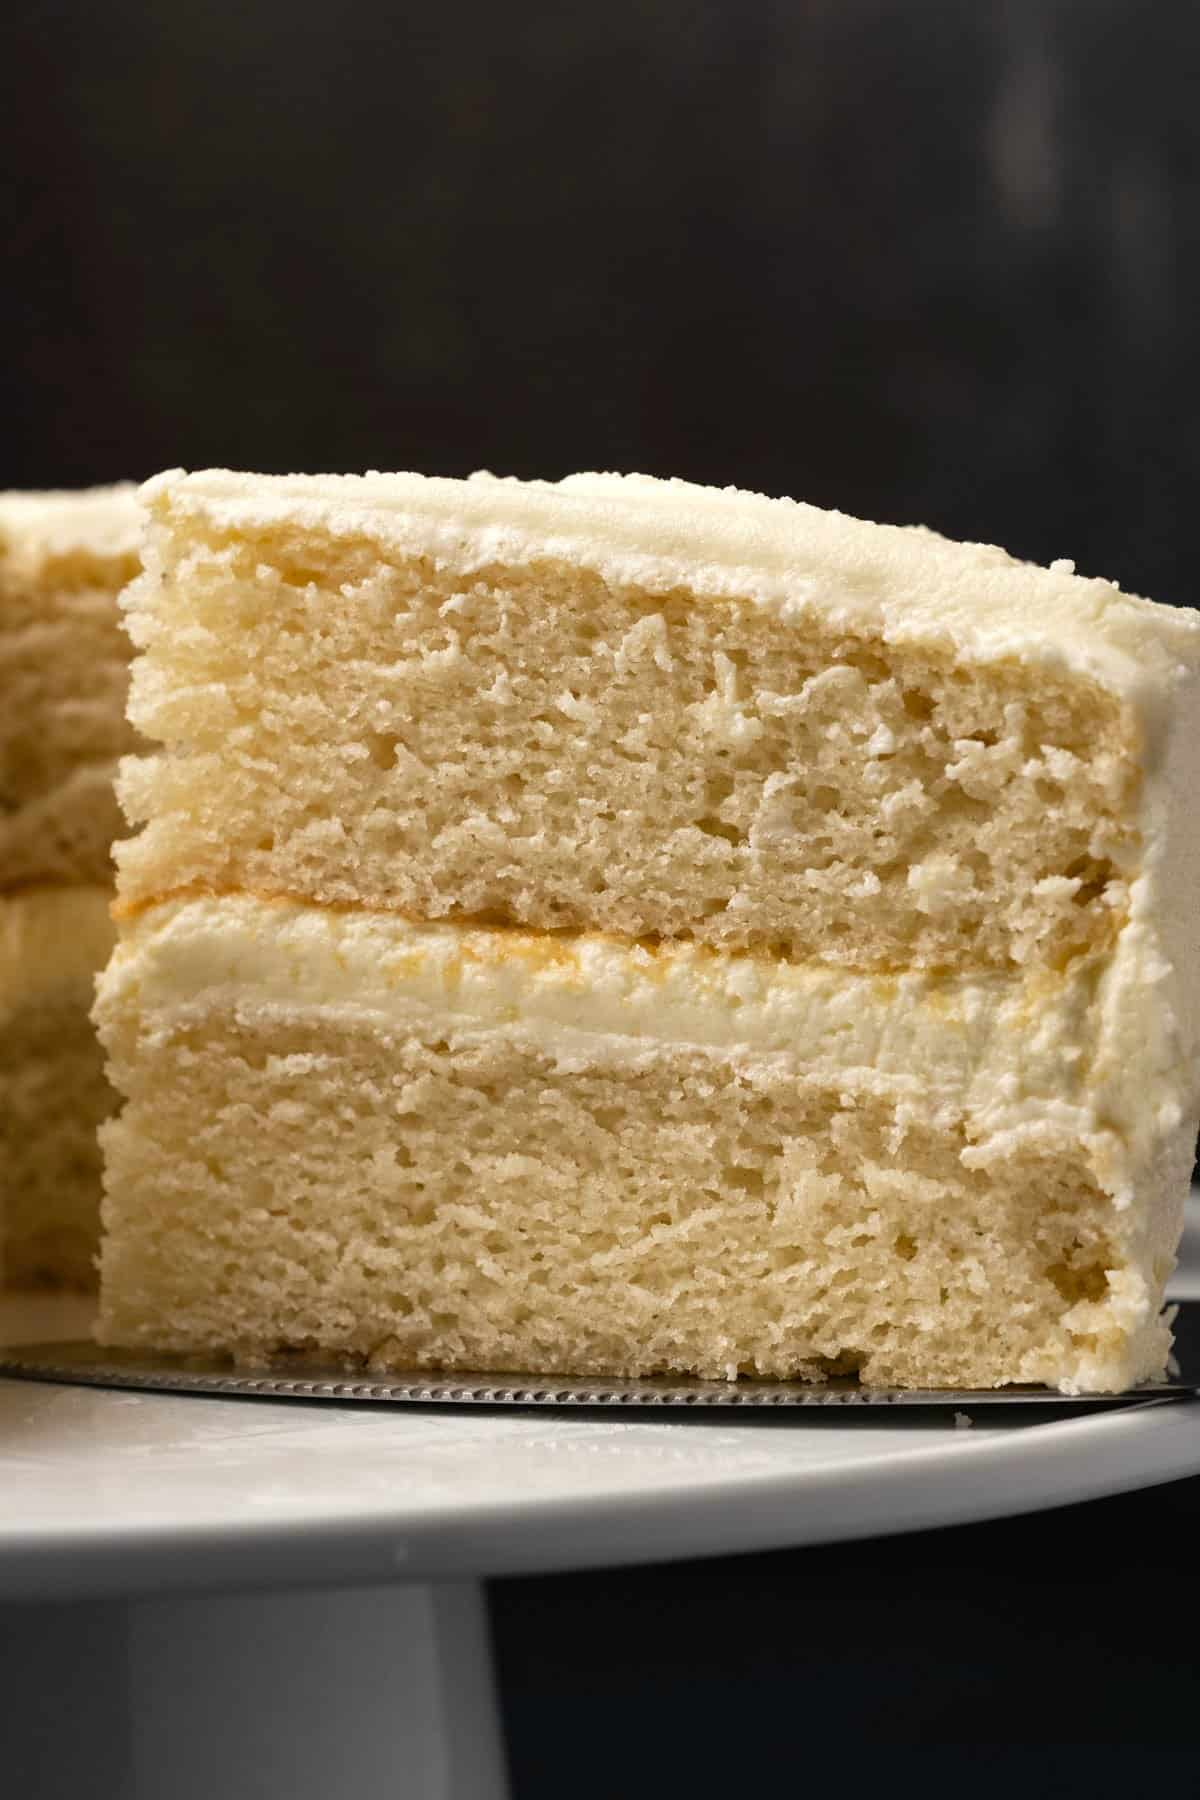 Vegan white cake with a slice cut on a white cake stand.